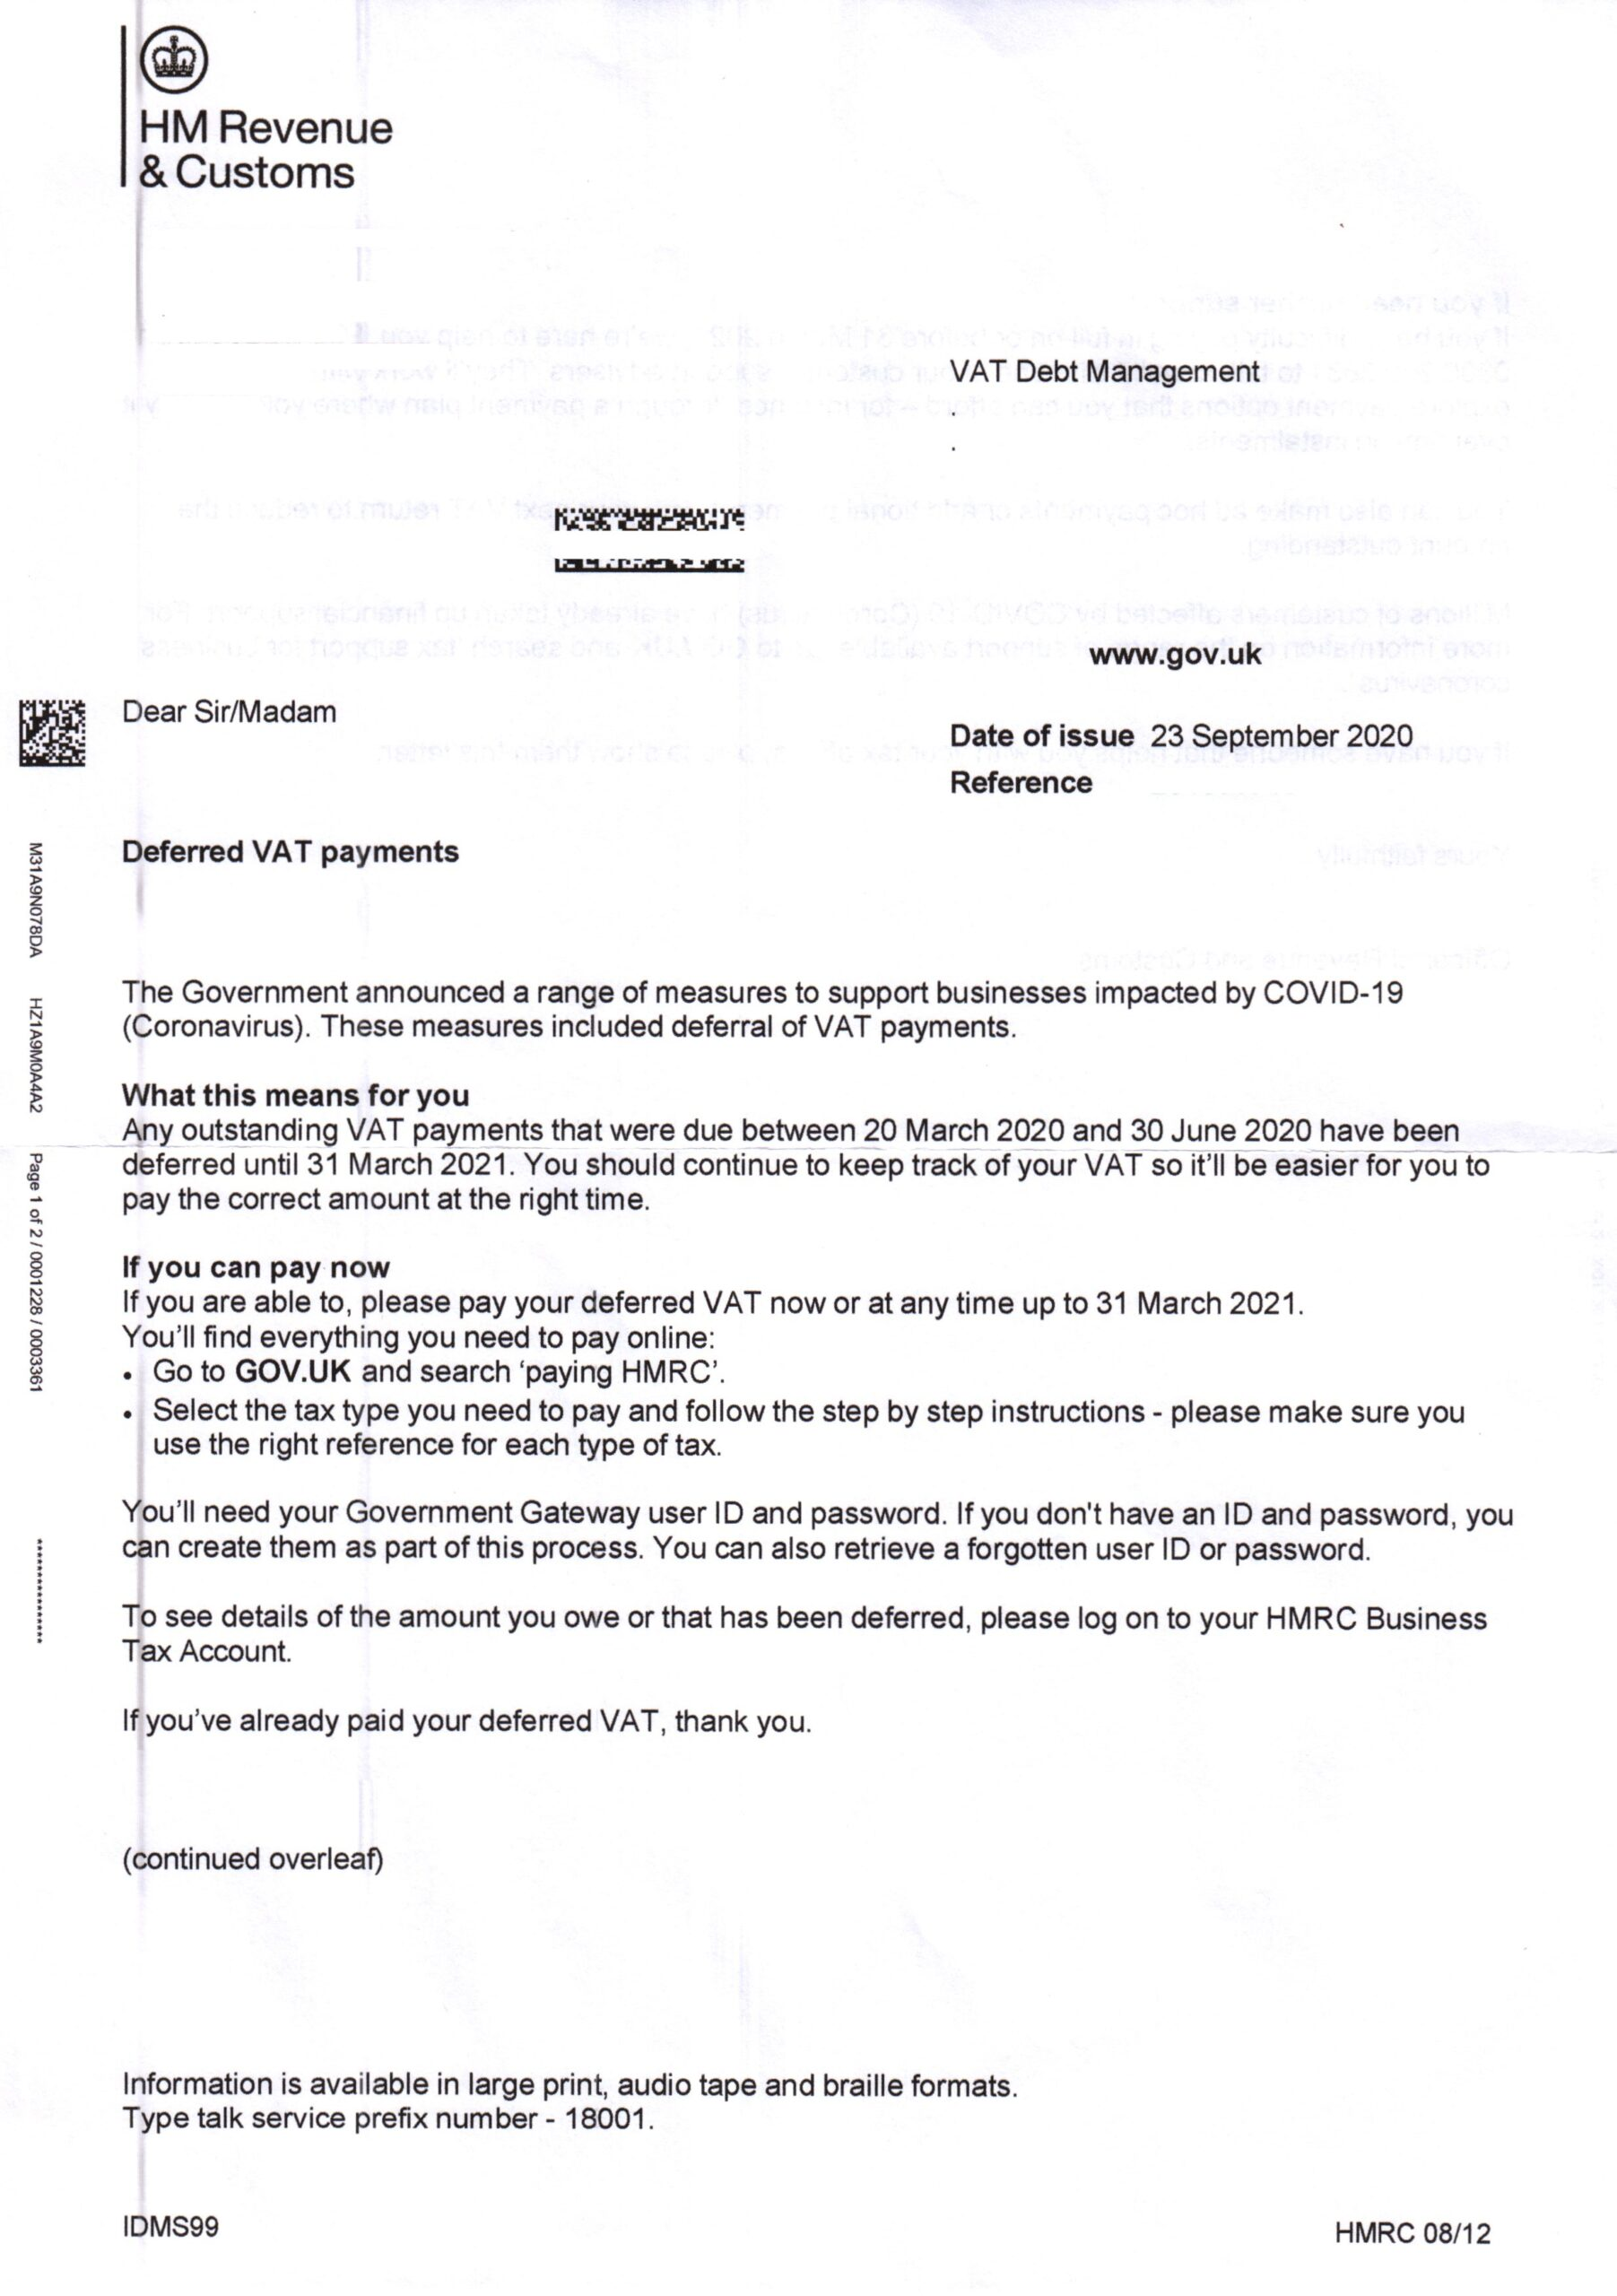 Out of date letter from HMRC for Deferred VAT payments